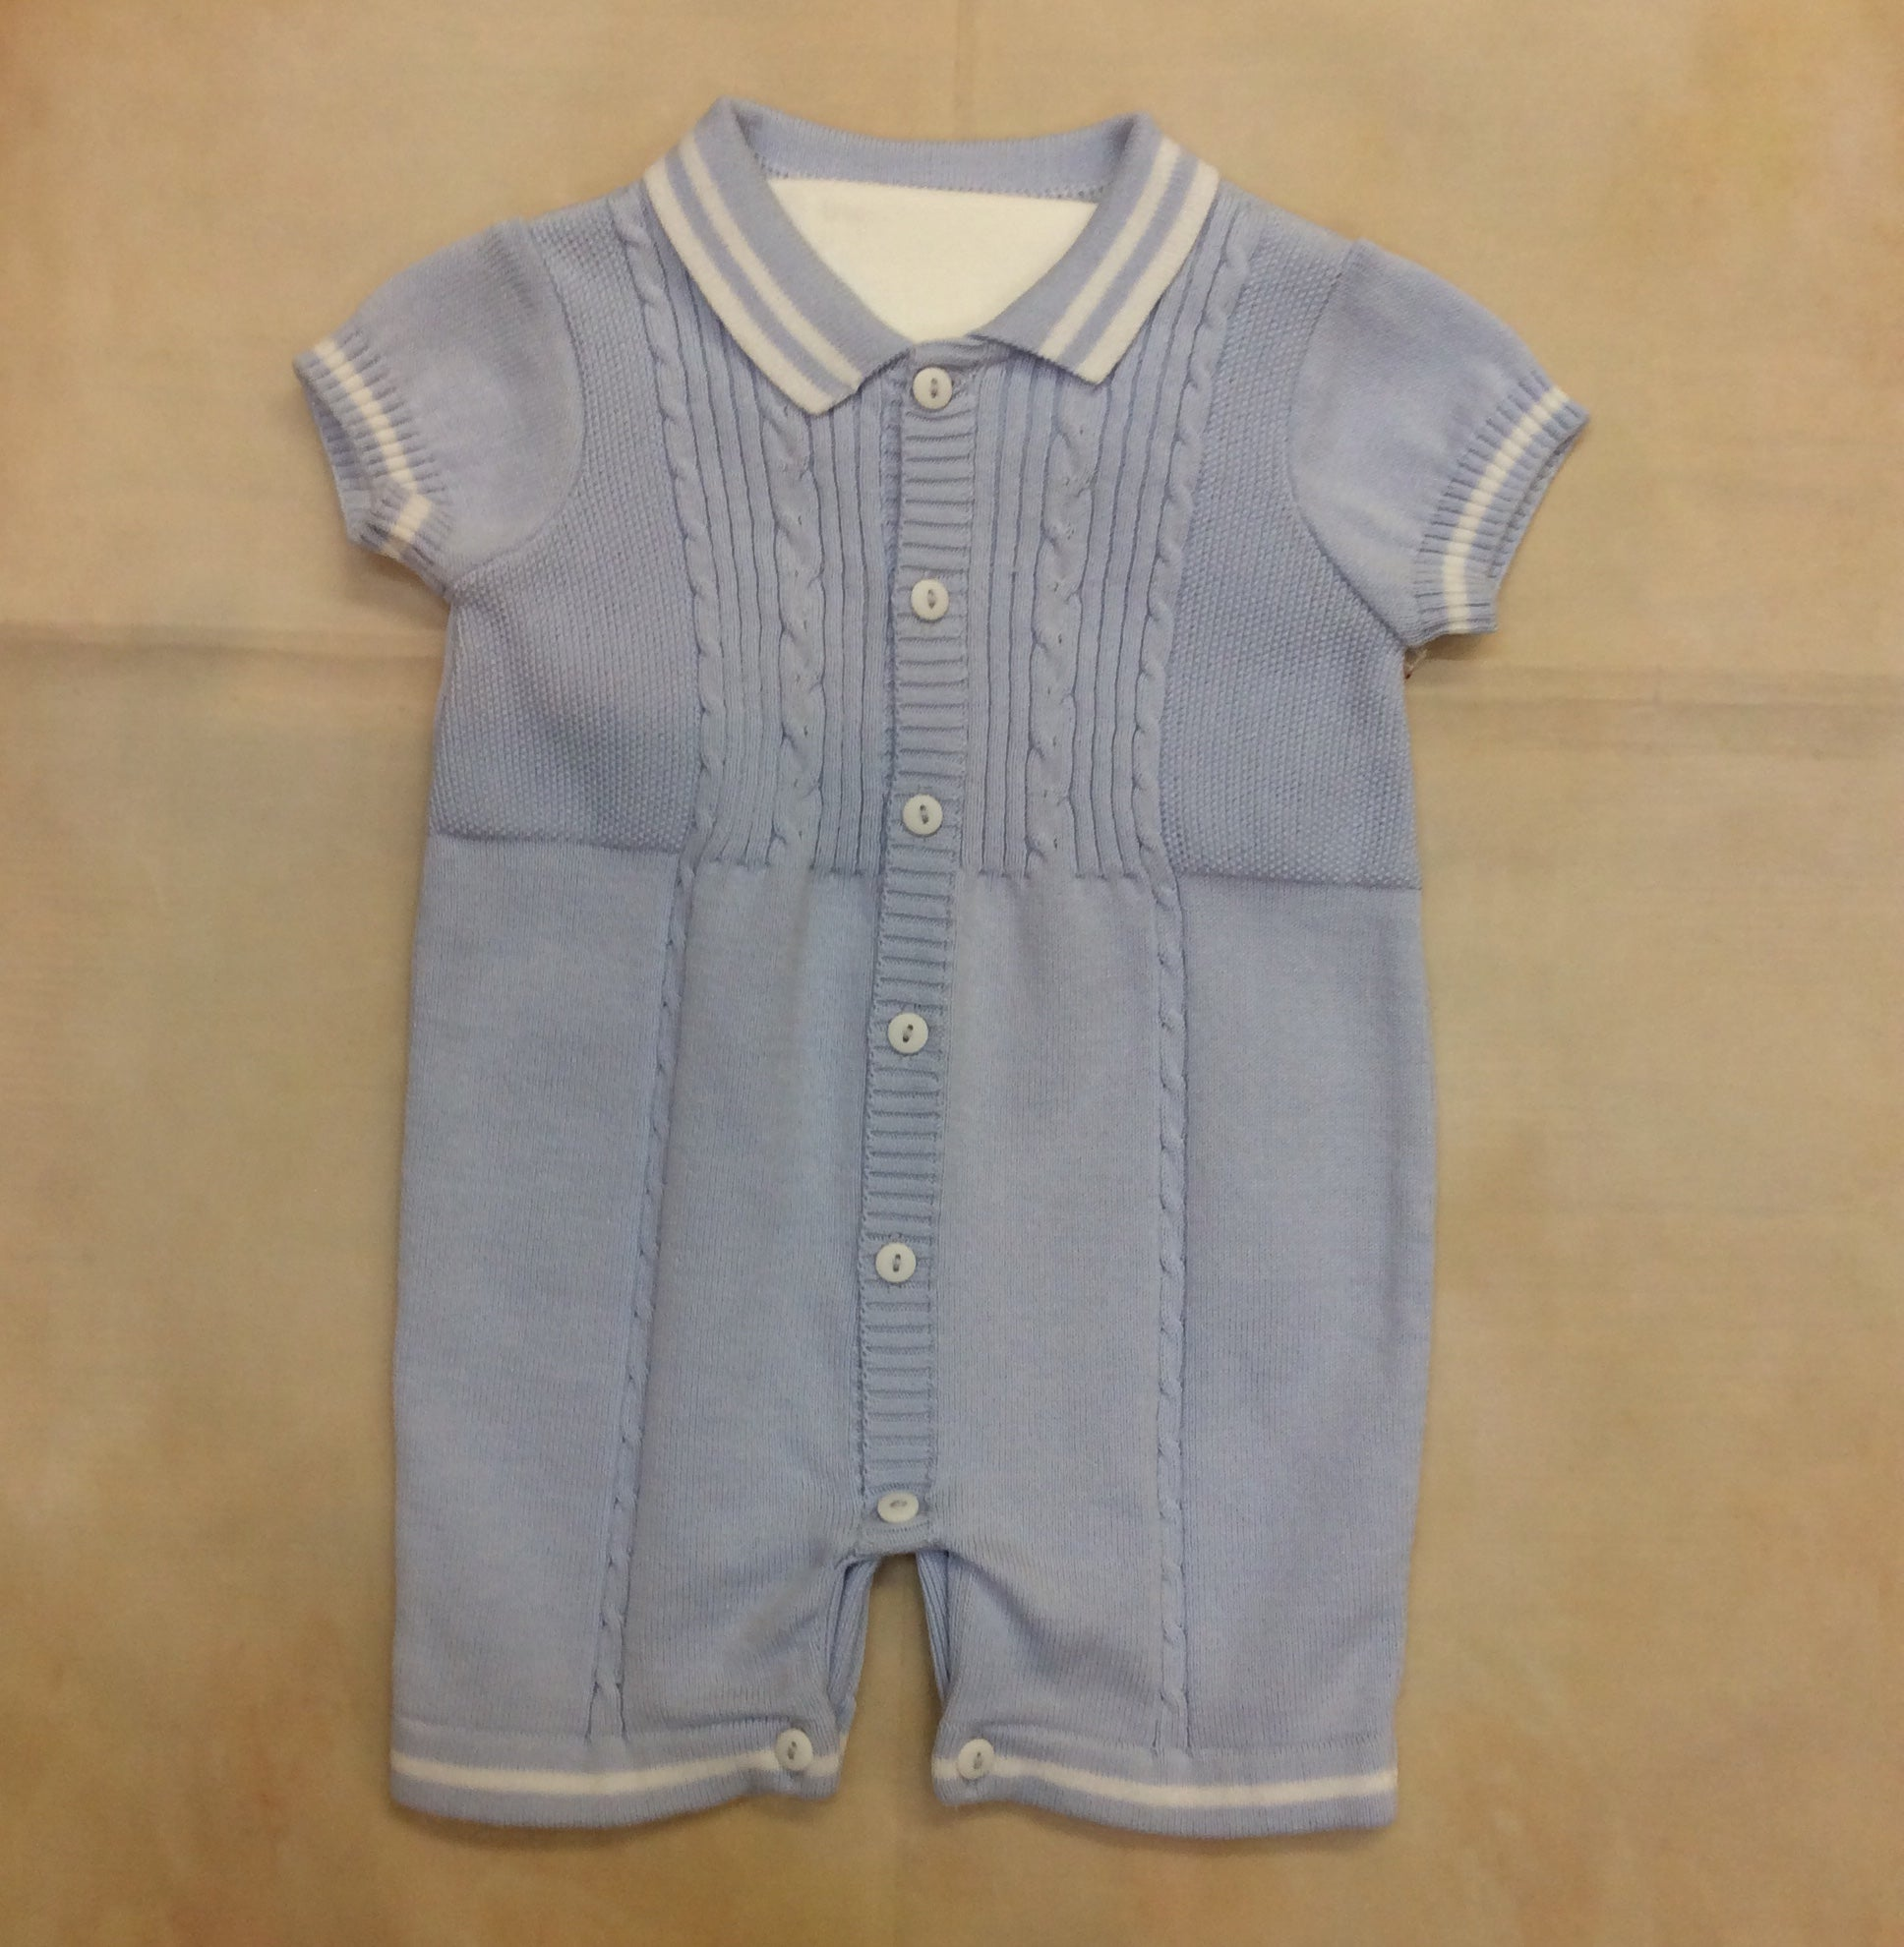 SL008082B Boys sky blue fine summer knit